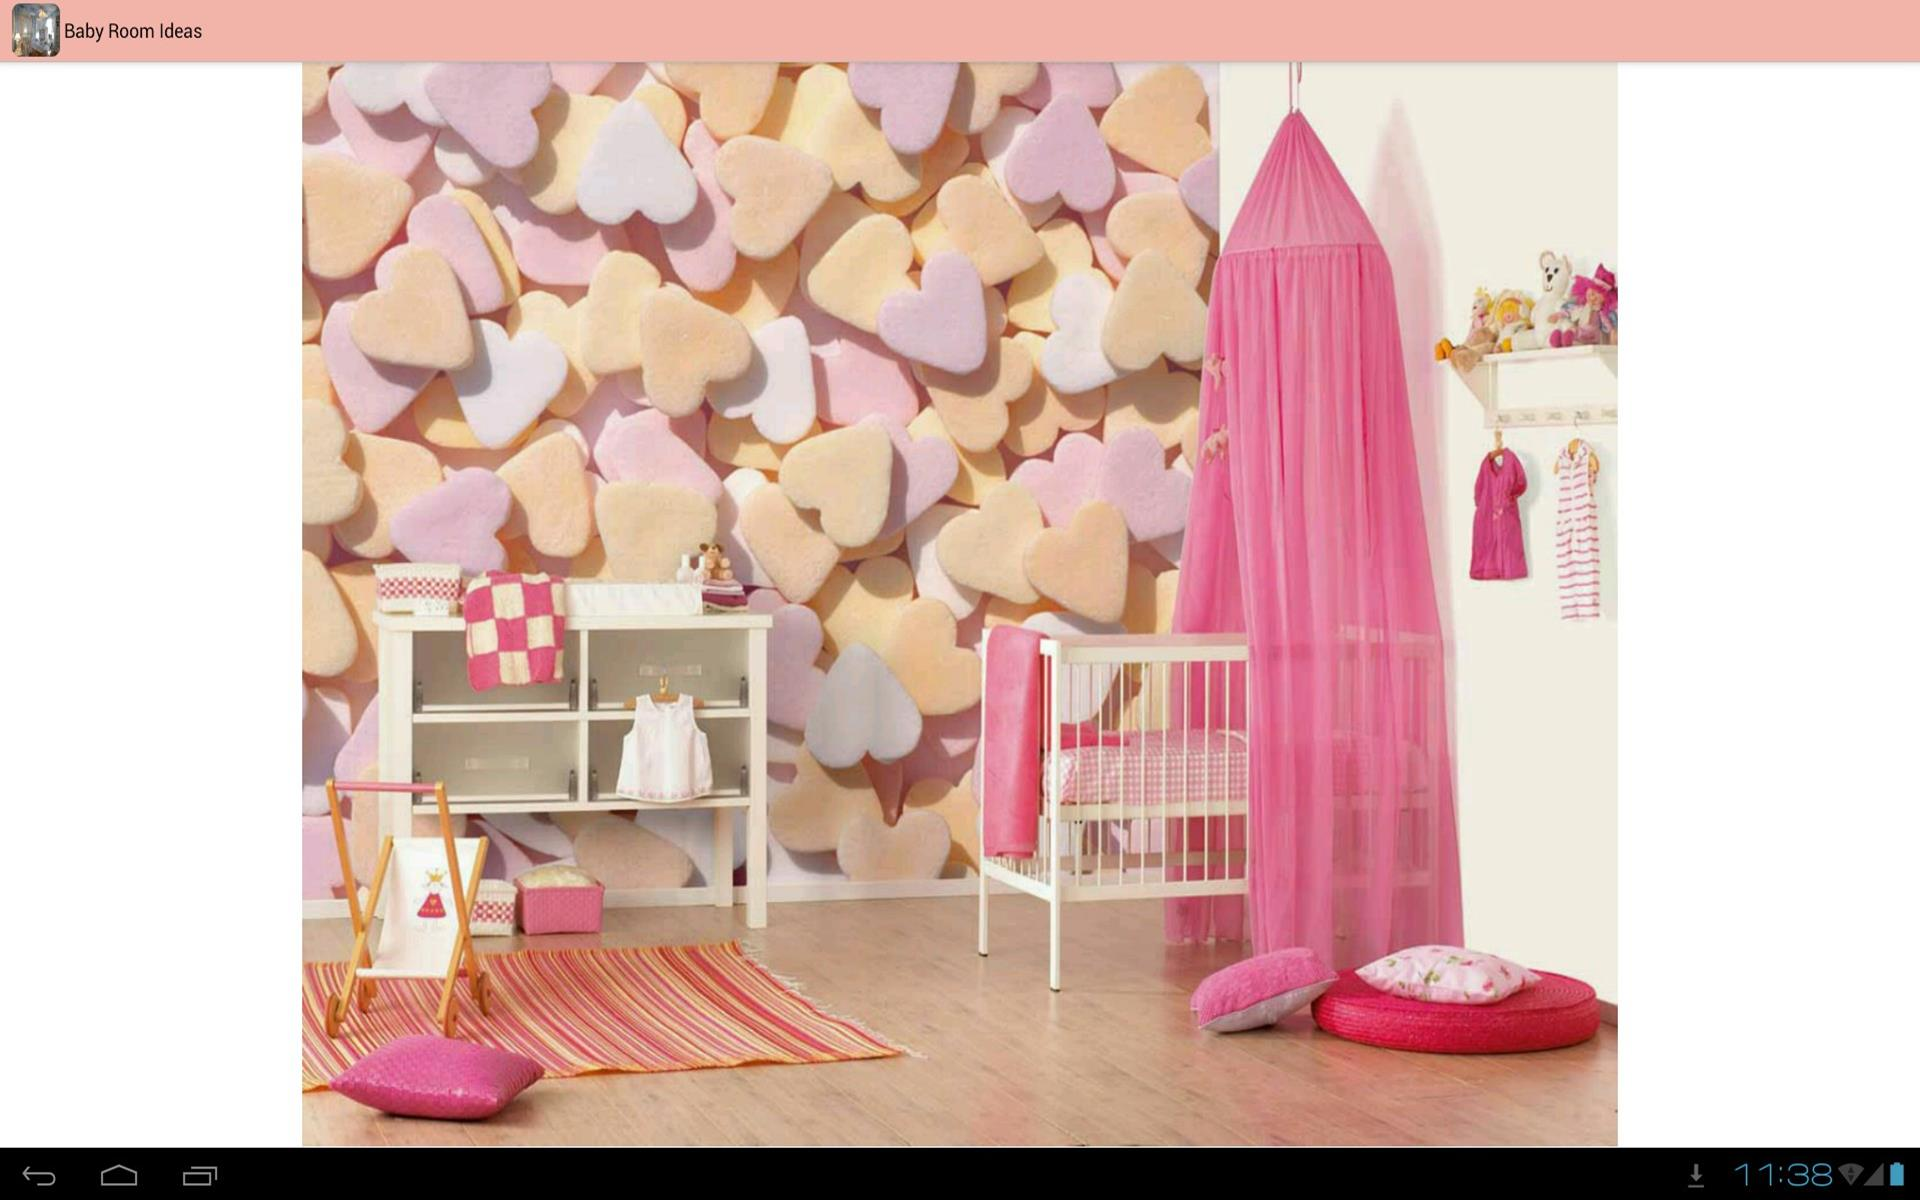 Baby Room Decor Ideas Appstore For Android